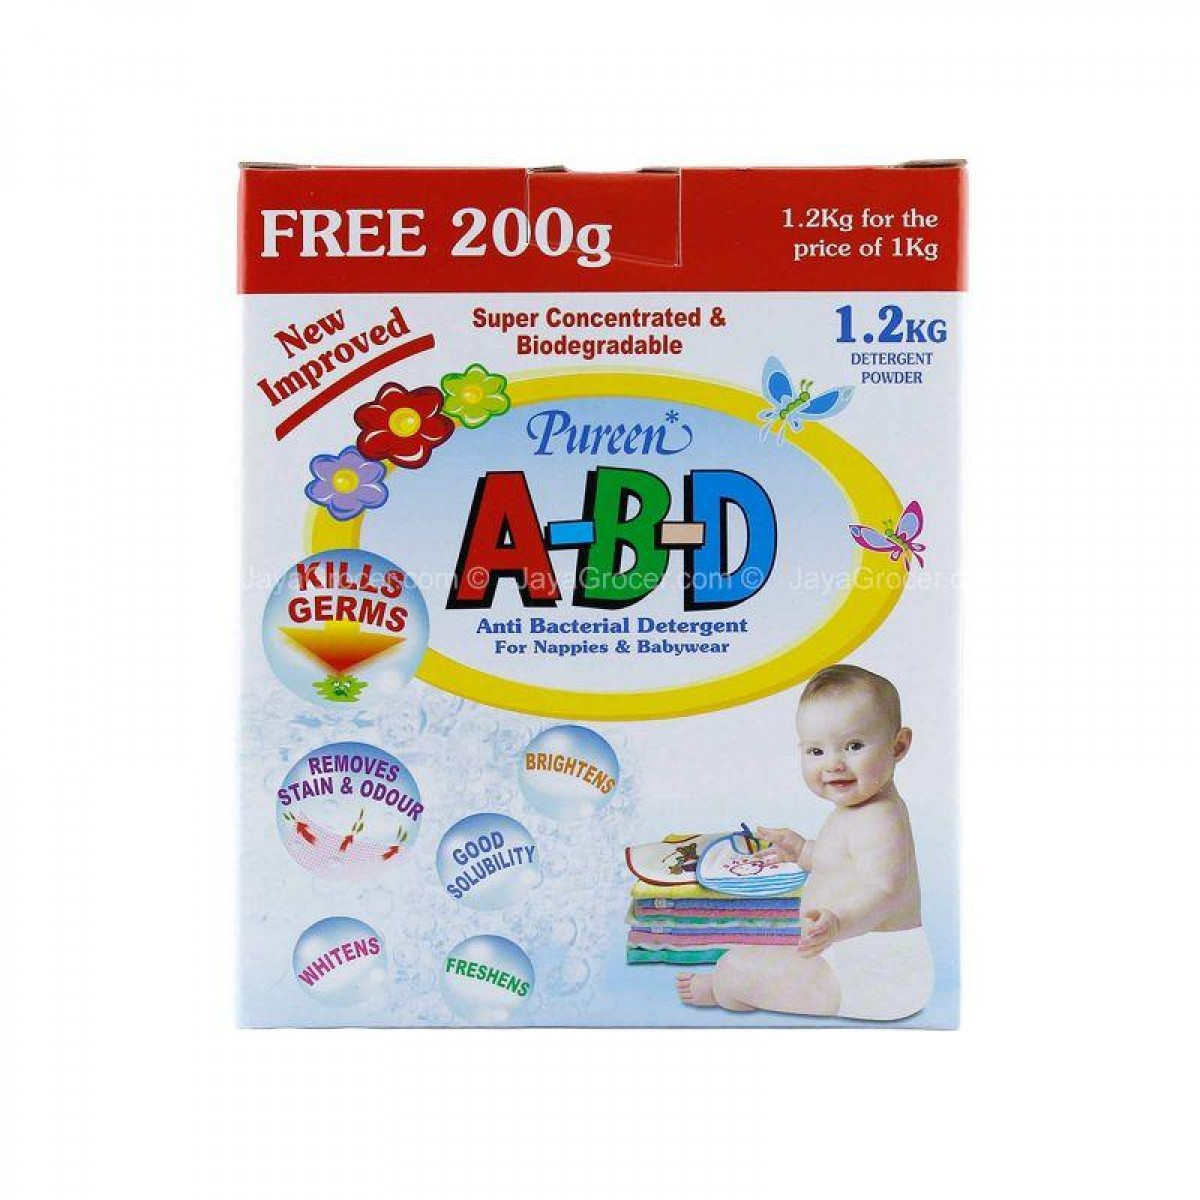 Pureen Abd Anti Bacterial Detergent (1.2kg + Free 200g) - Kico Baby Center